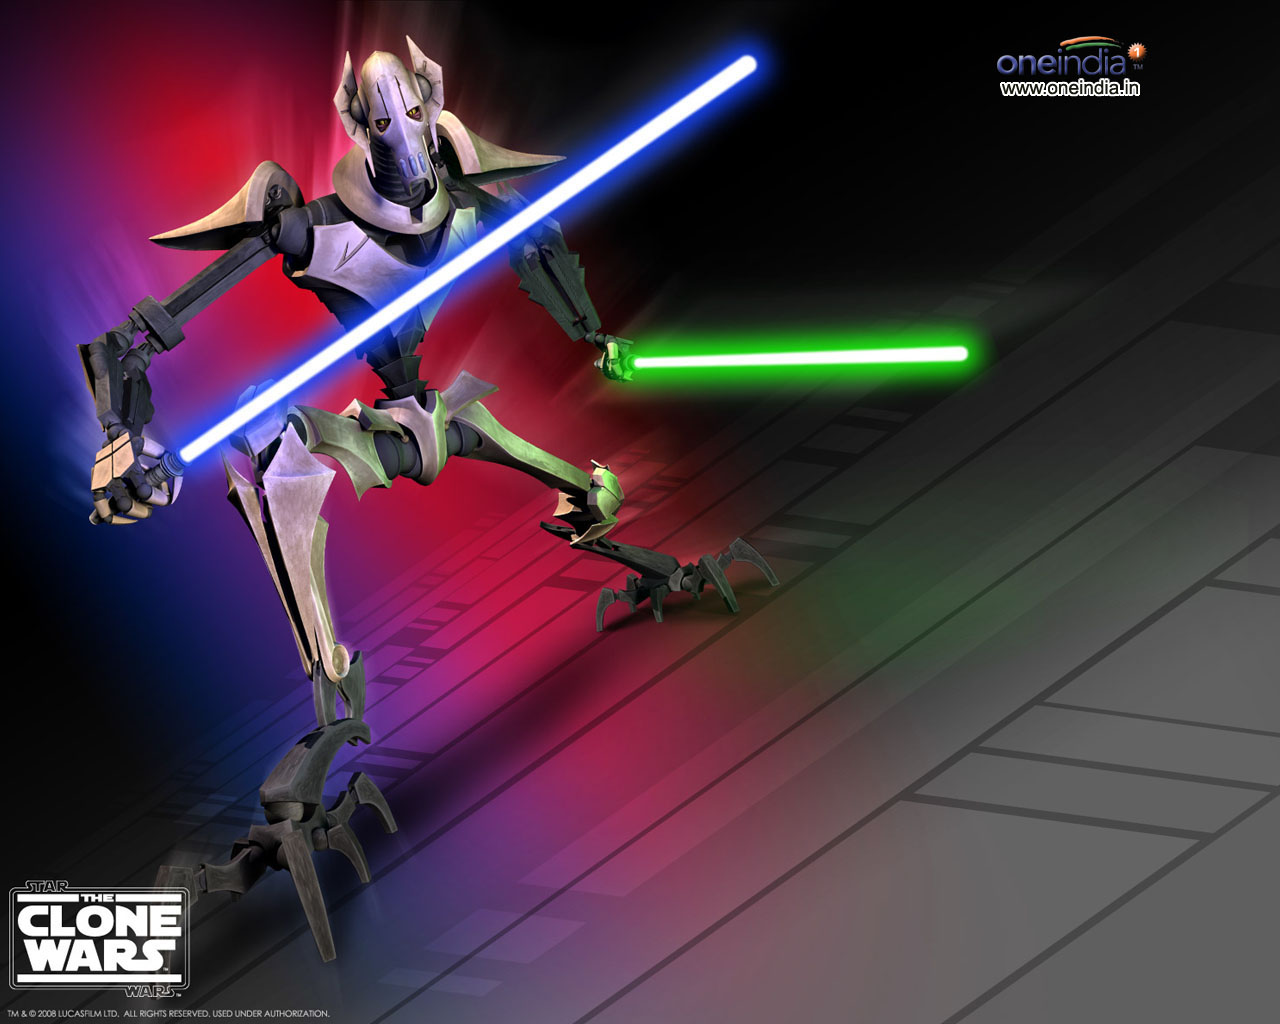 Star wars the clone wars wallpaper